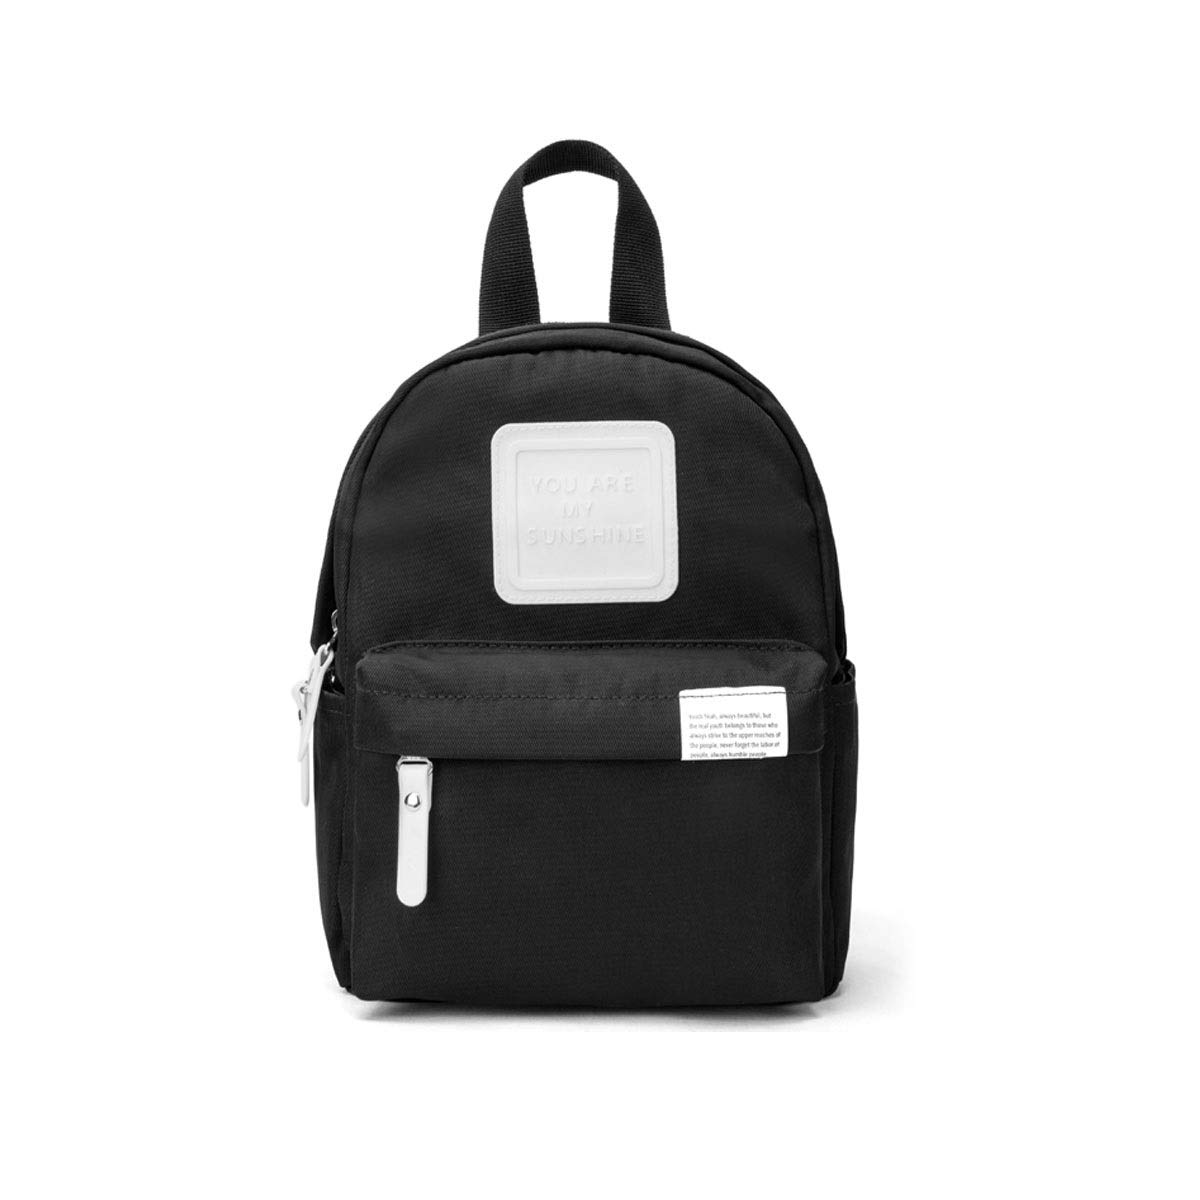 TONGBOSHI Backpack Female College Student Leisure Travel Bag, Small Fresh Backpack Campus Bag Male Fashion Trend (Color : Black)